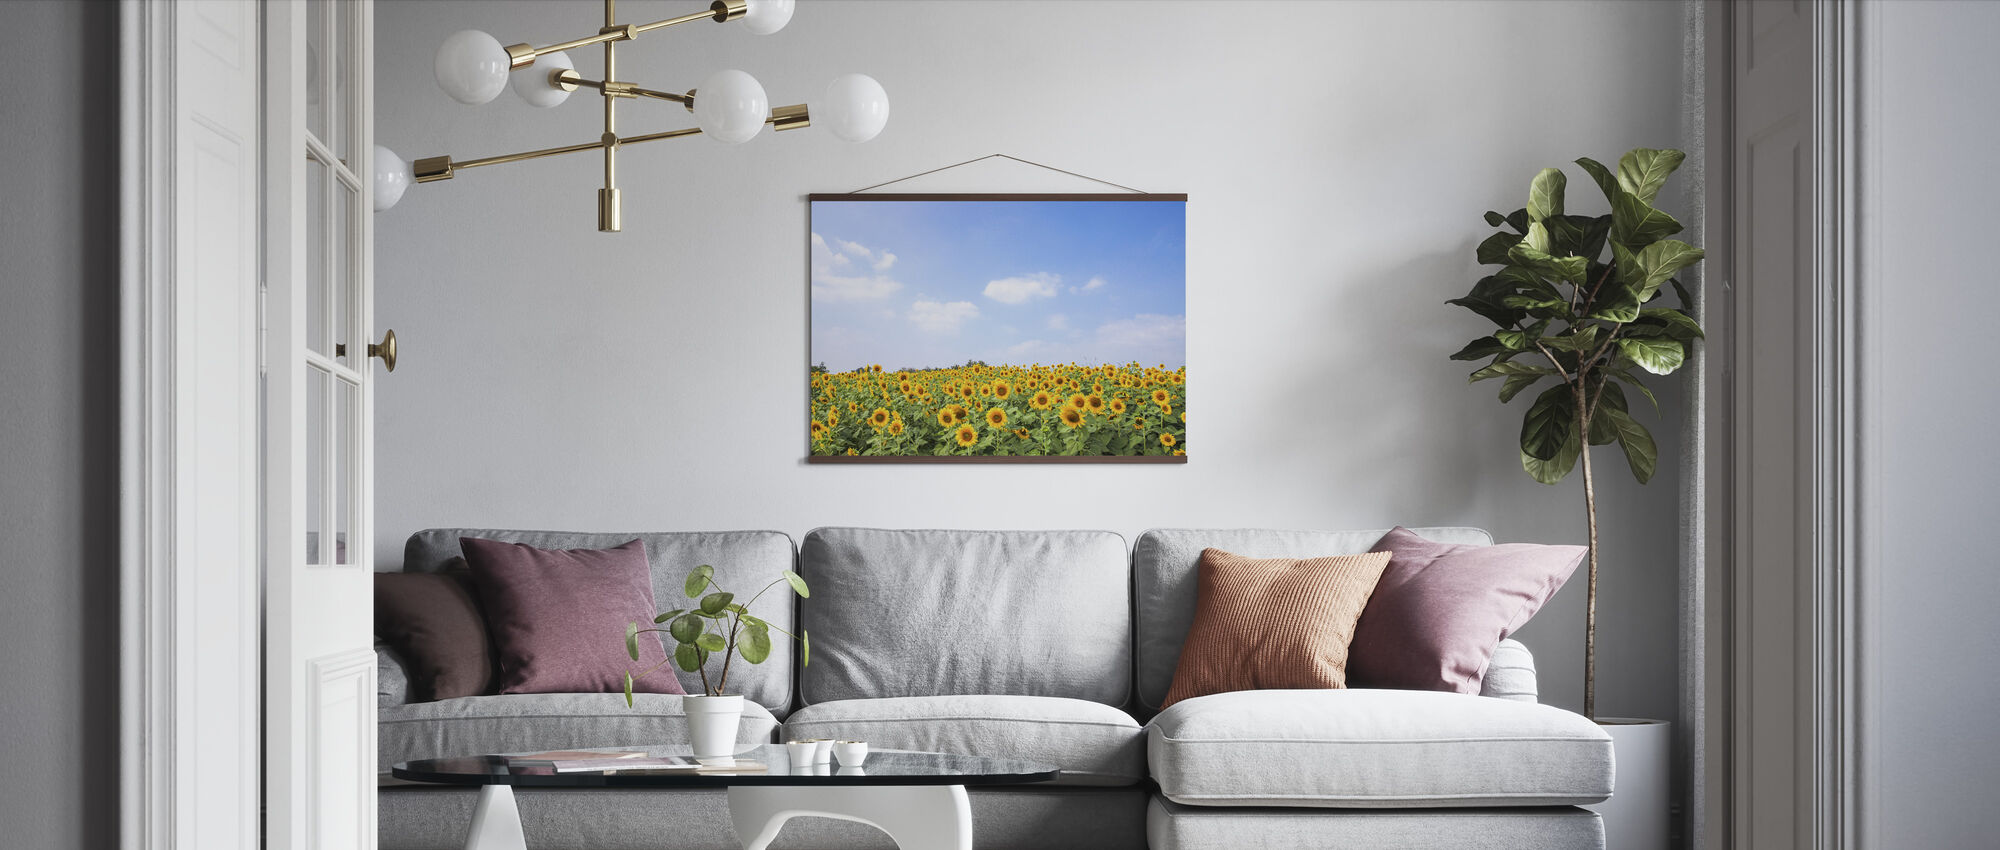 Soft Sunflowers - Poster - Living Room